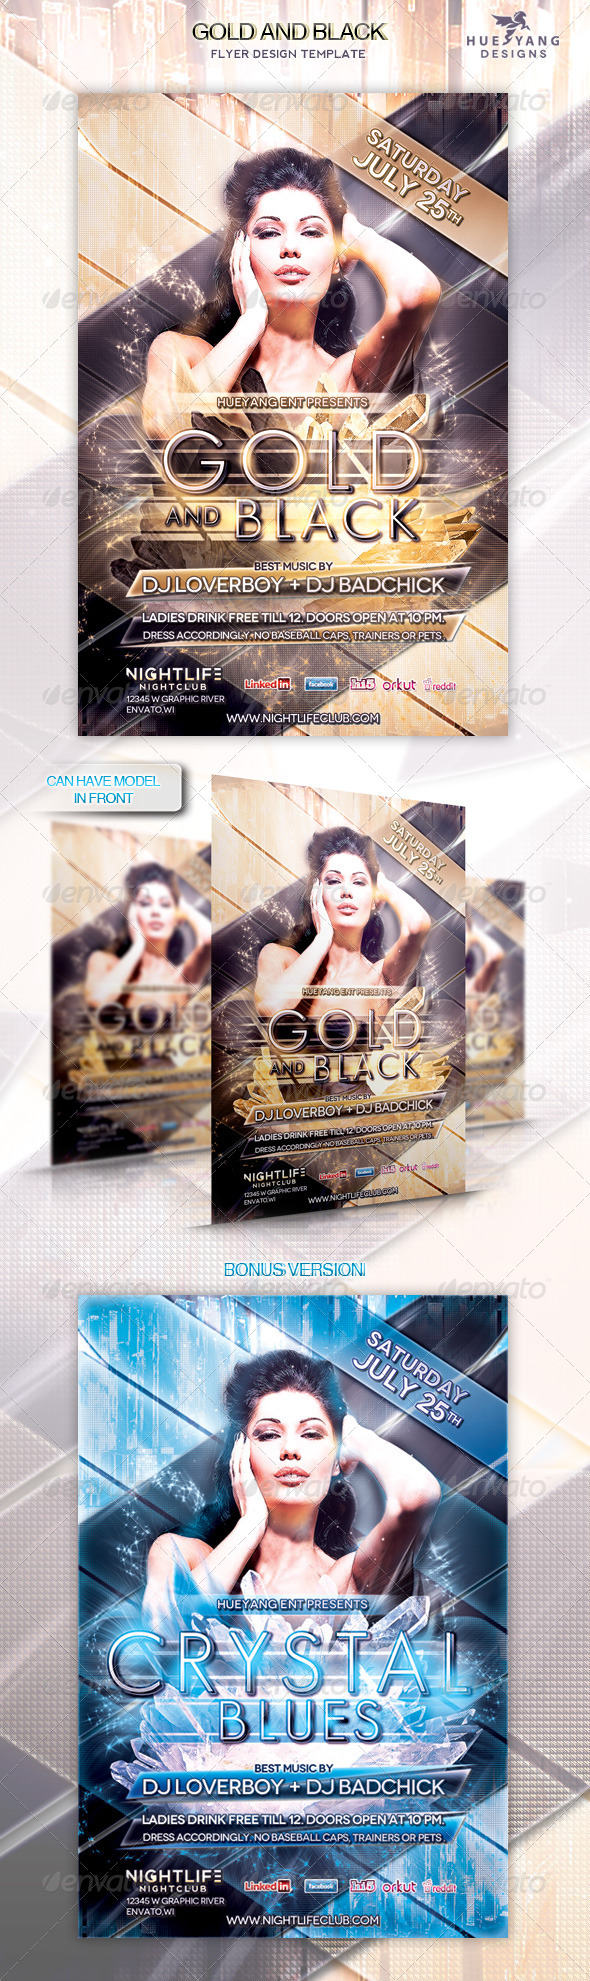 Gold and Black Flyer Template - Clubs & Parties Events